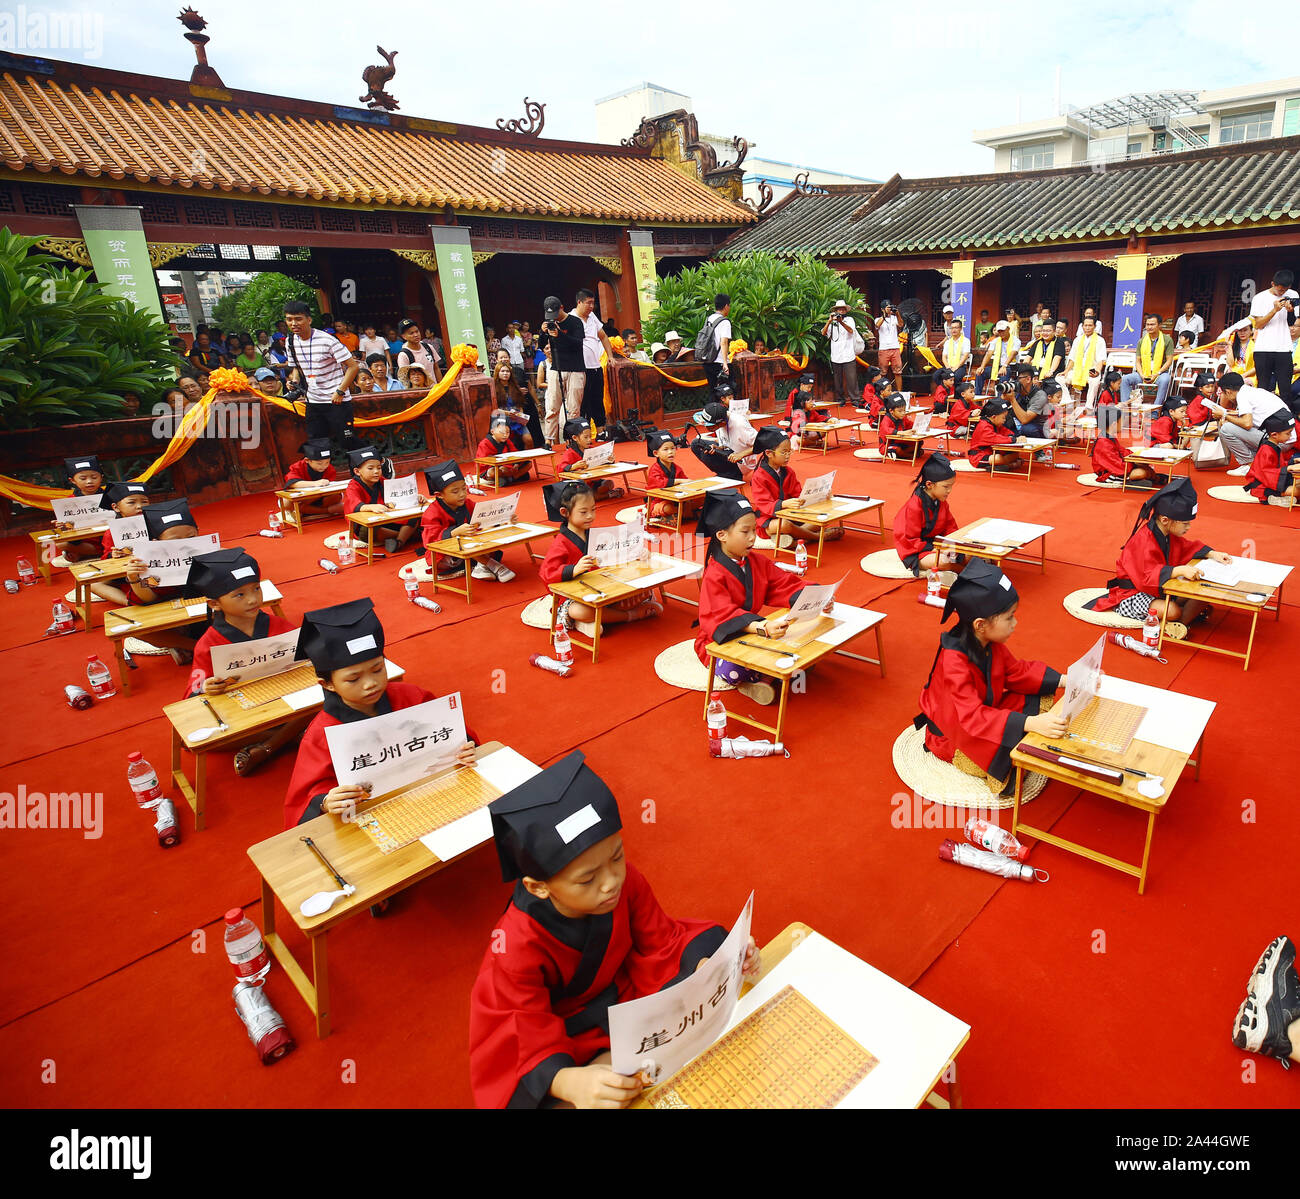 "Over 30 pre-school children dressed in traditional Han-style costumes attend their ""first writing"" ceremony at the Chinese Confucius Temple School in Stock Photo"